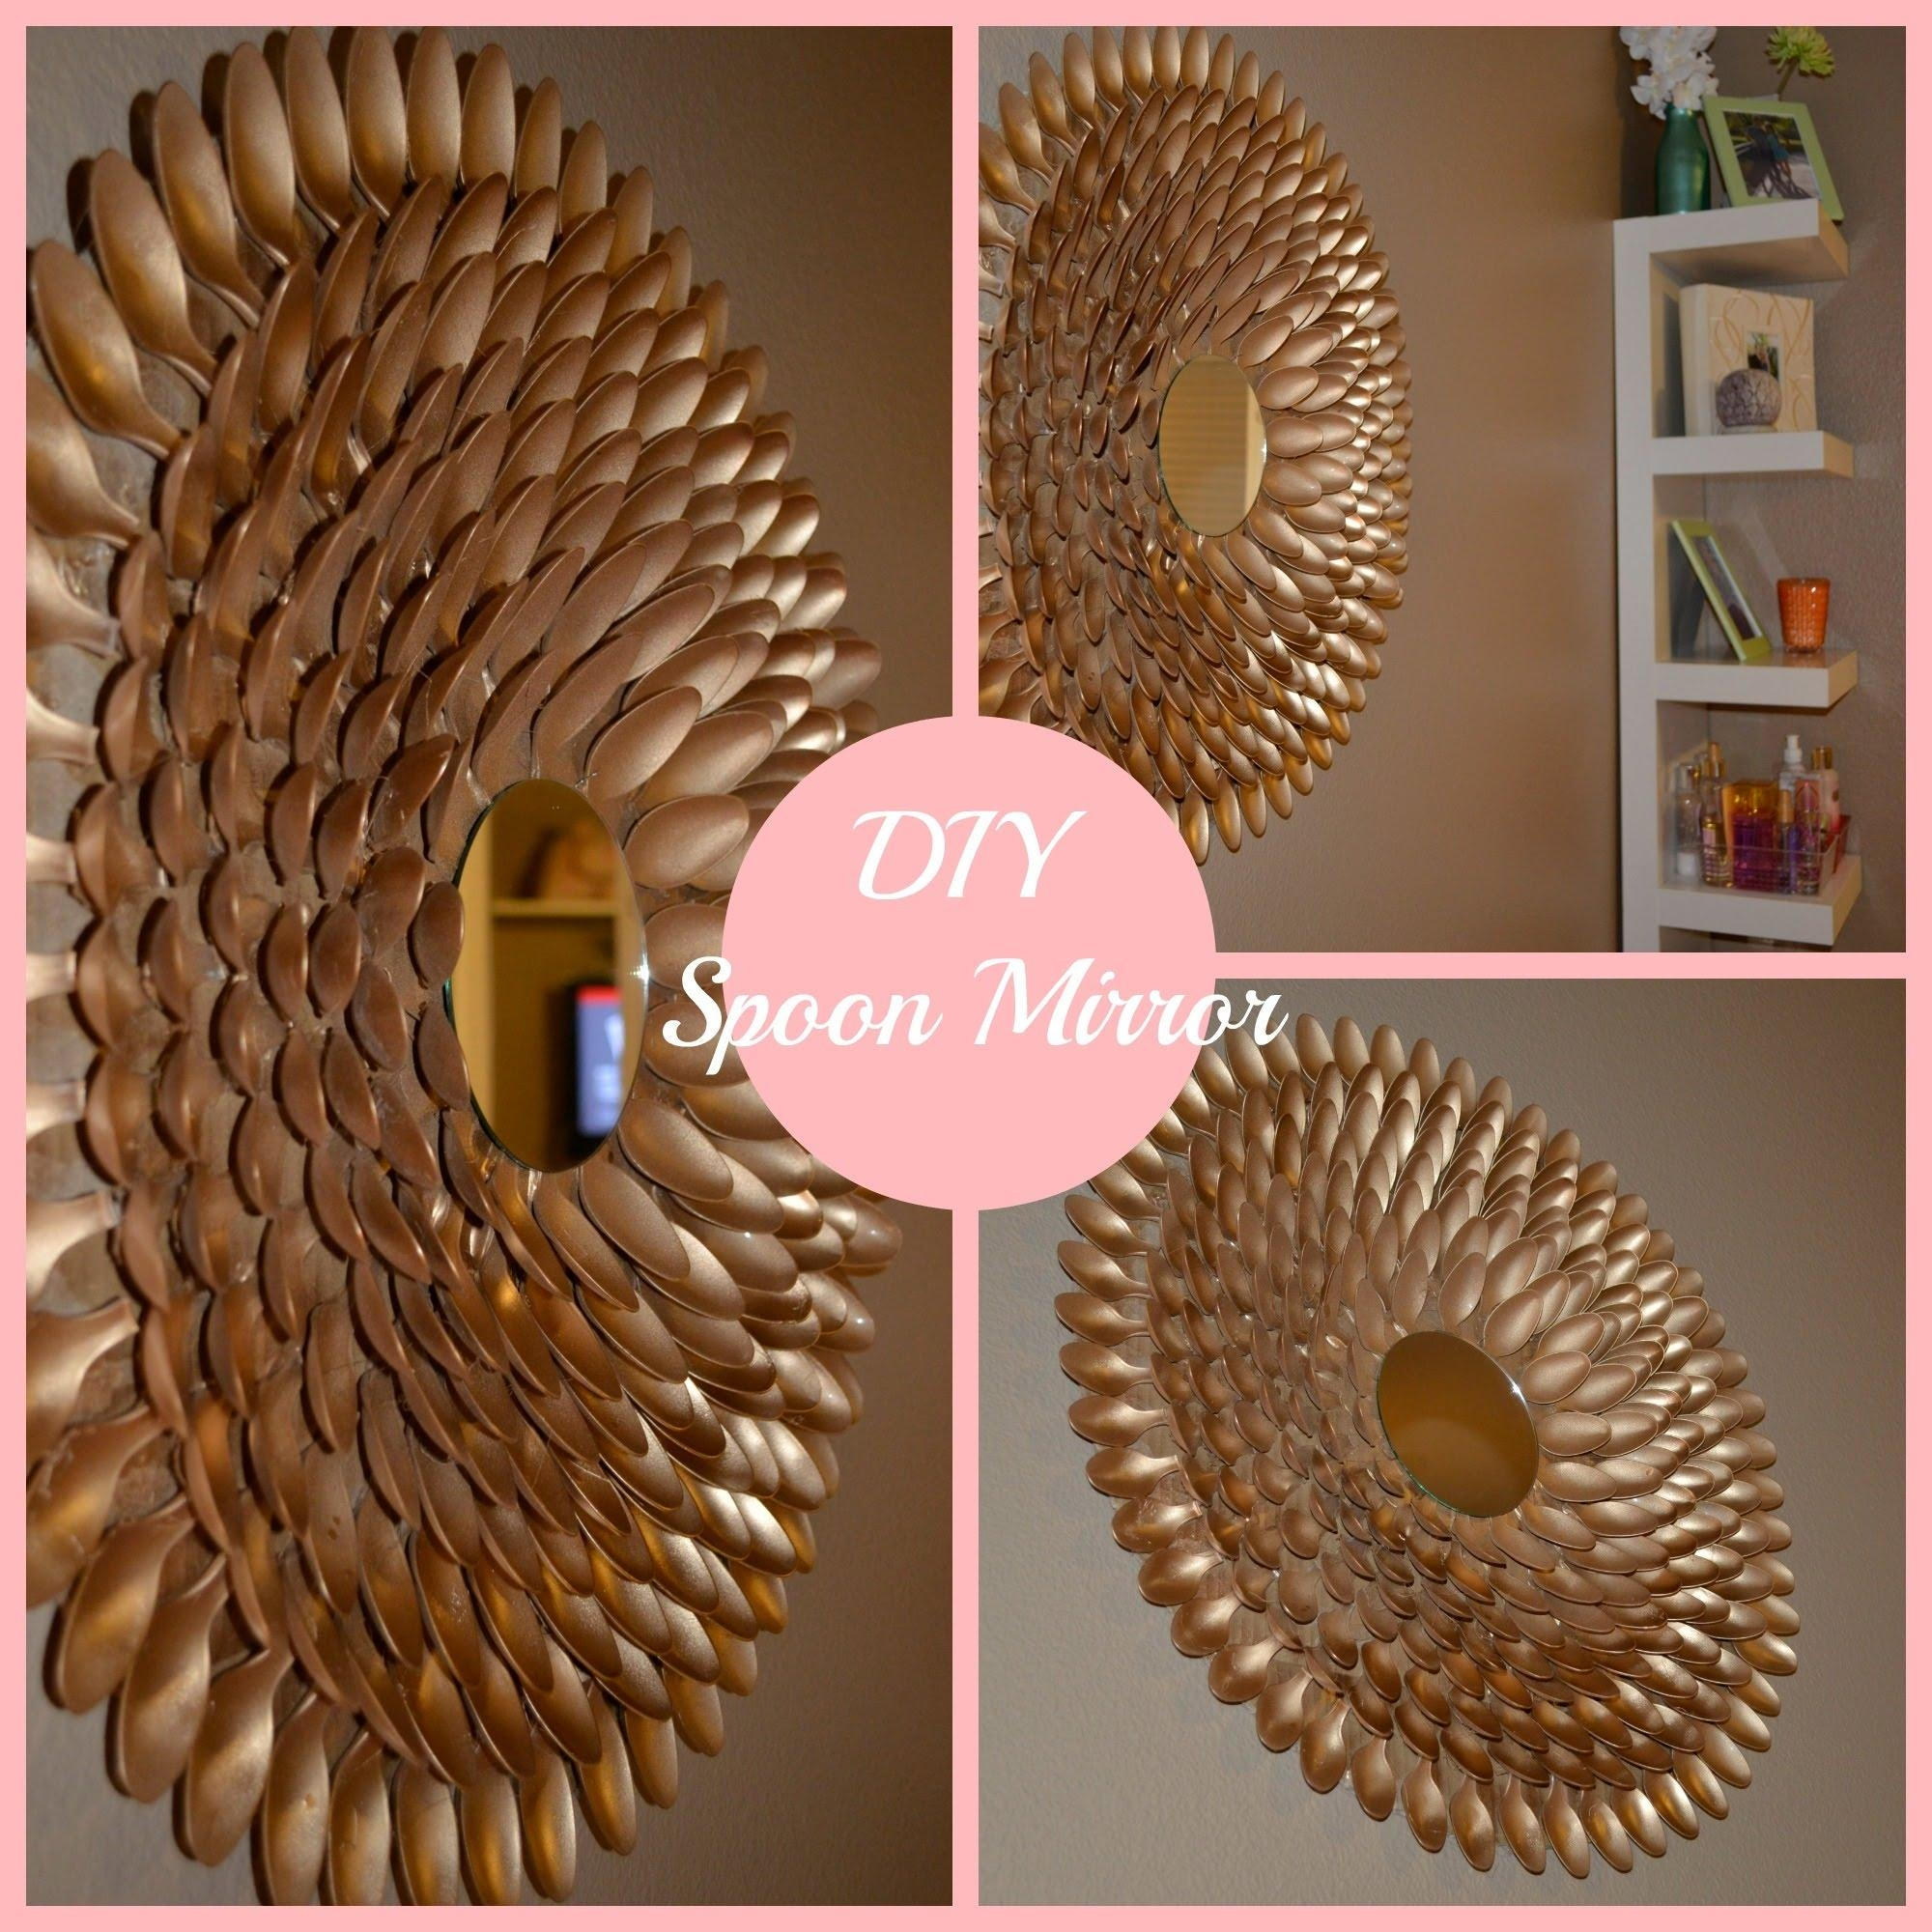 Diy Spoon Mirror Wall Decor – Youtube With Regard To Diy Mirror Wall Art (Image 14 of 20)